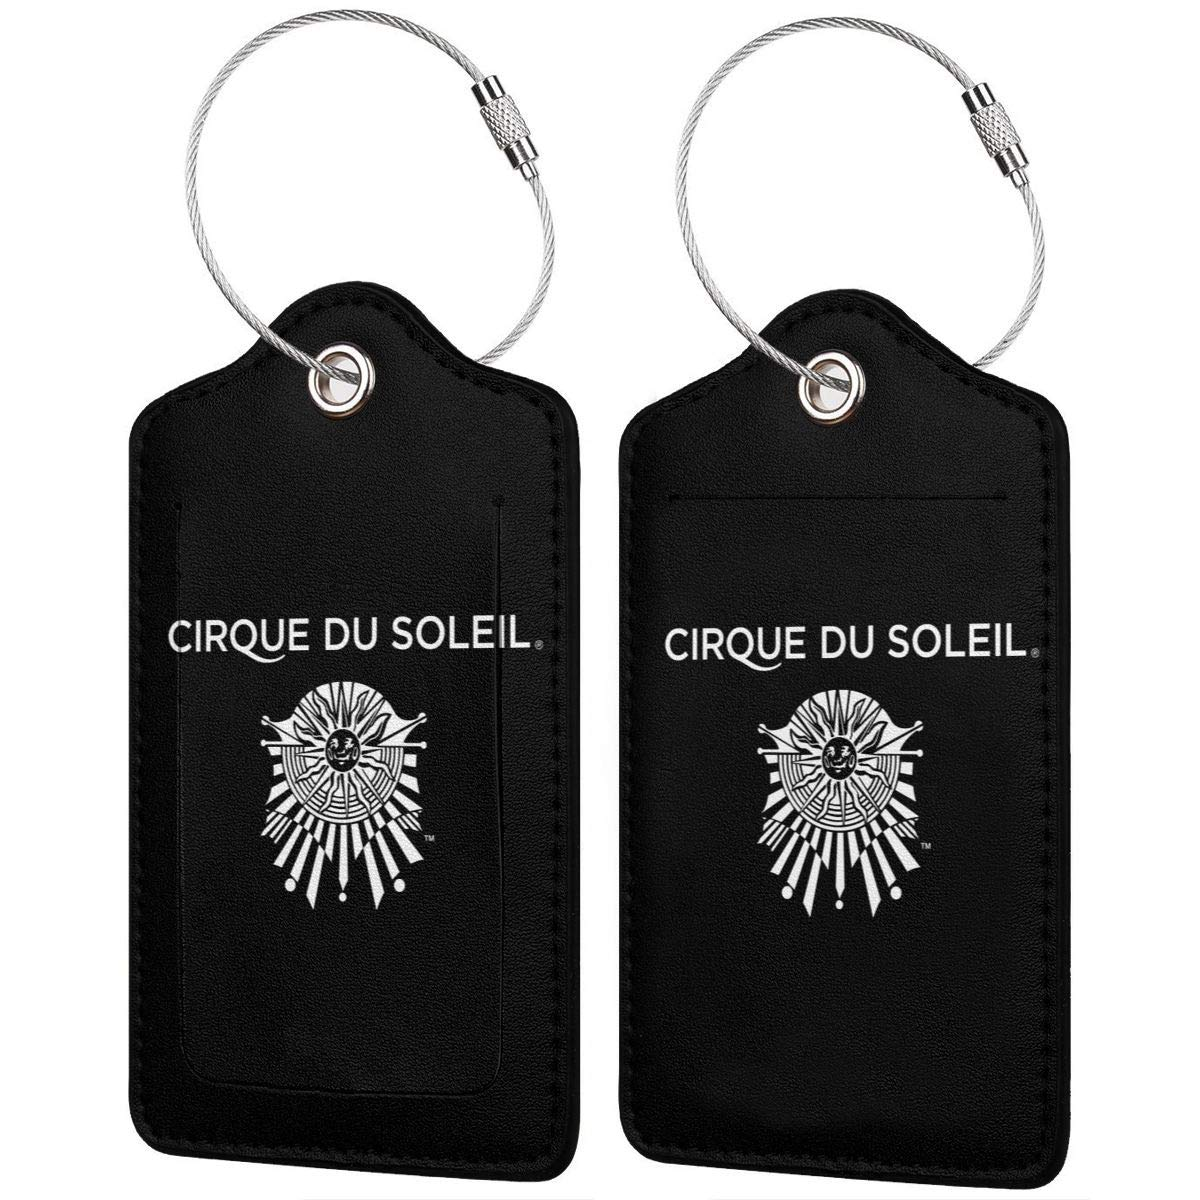 Cirque Du Soleil Leather Luggage Tag Travel ID Label For Baggage Suitcase